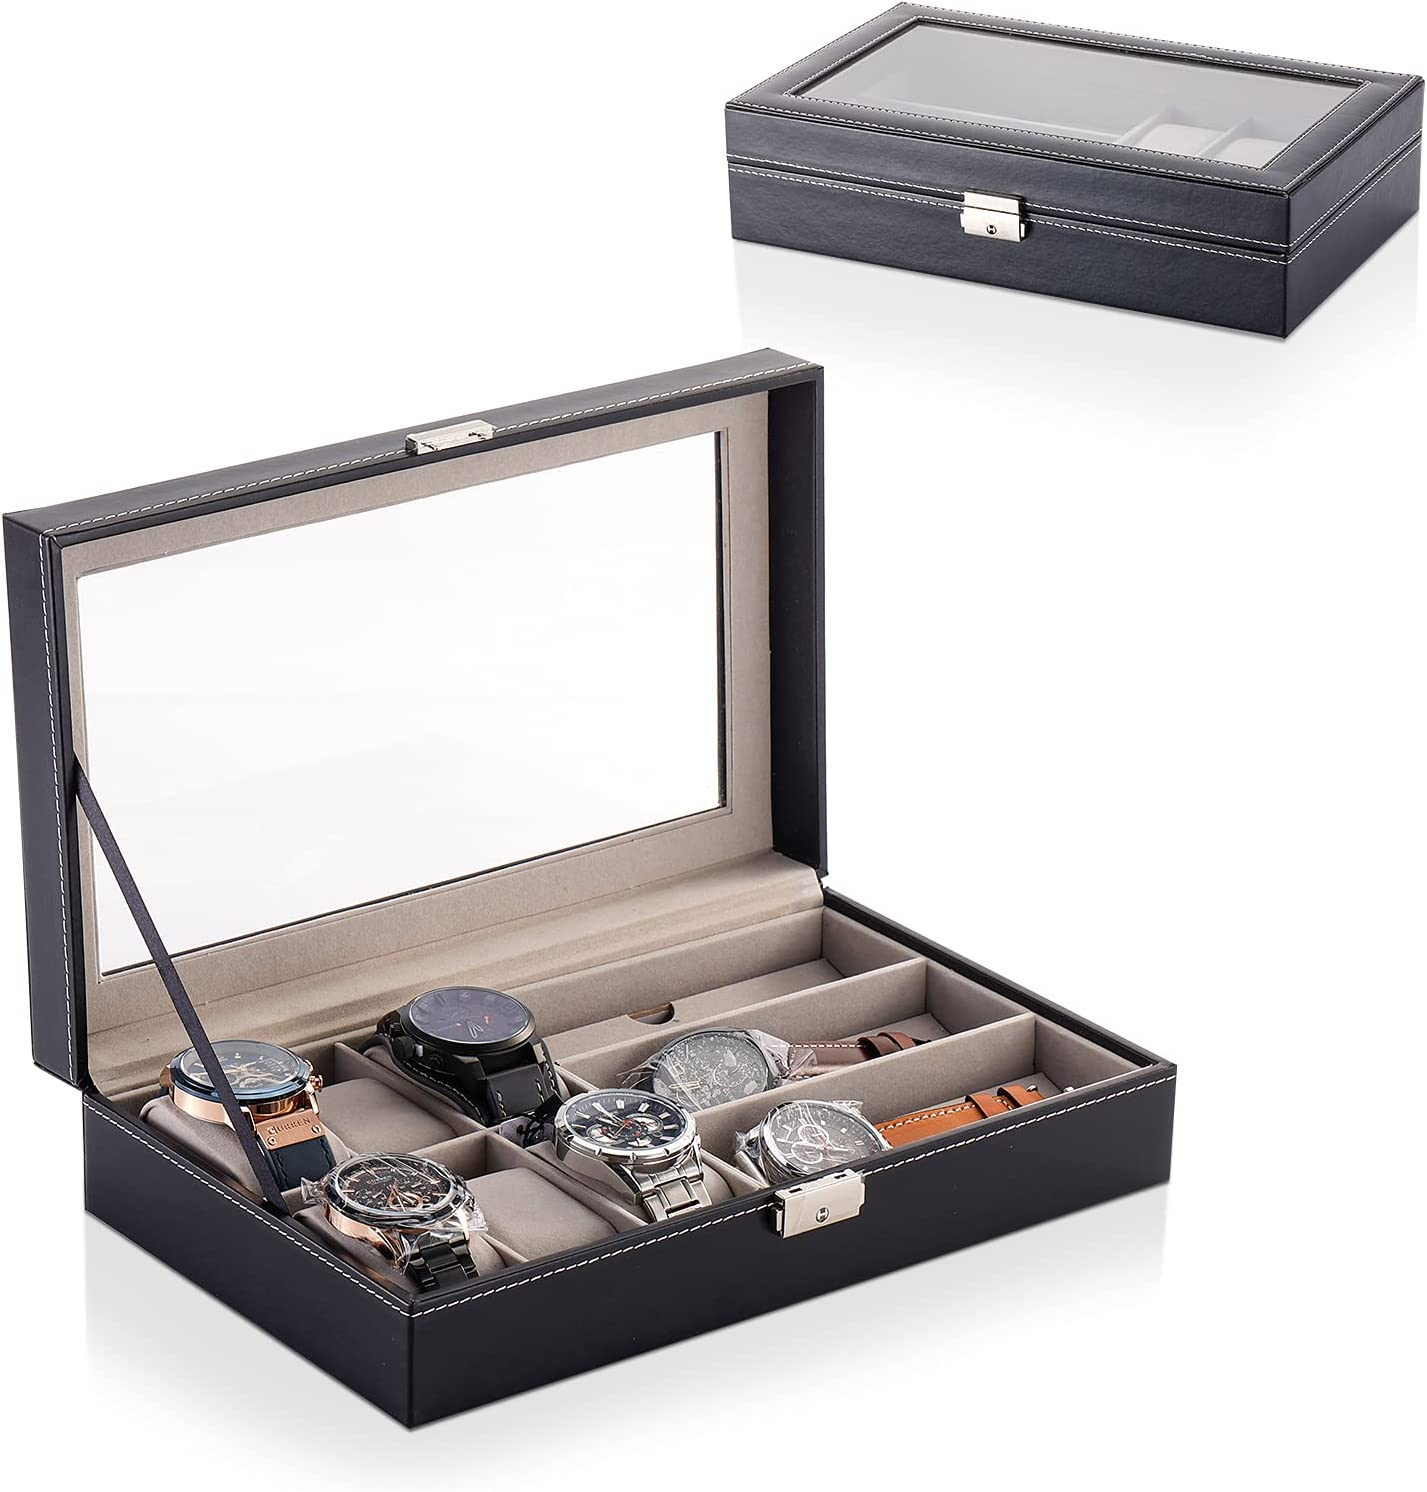 YDJGY FIVEDREAM Watch Box Dealing Mesa Mall full price reduction and Glasses Organizer wi Sunglass Case